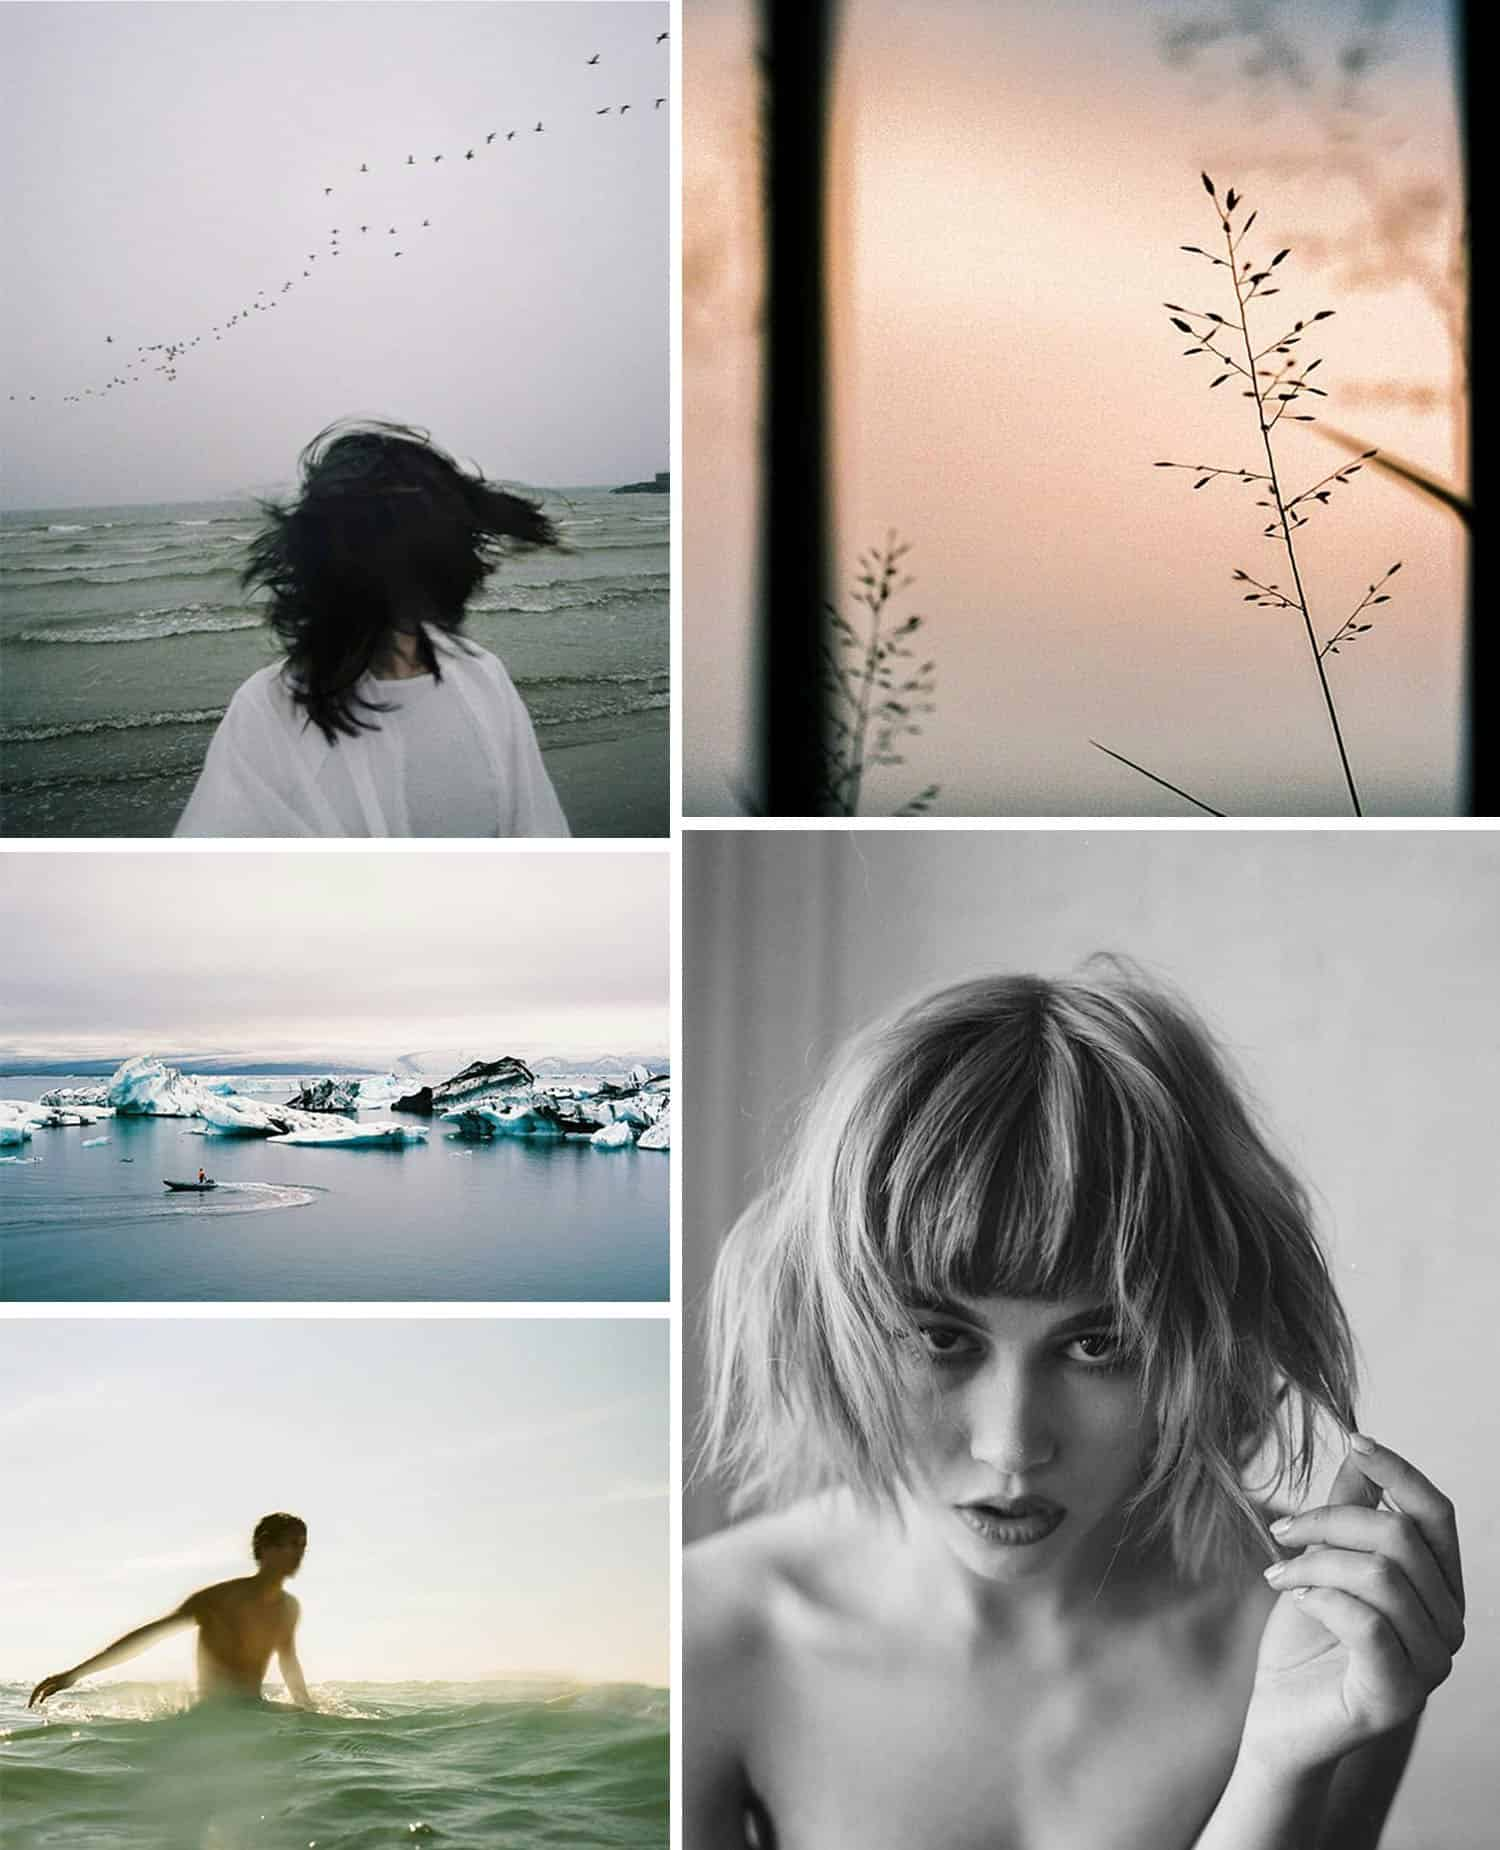 Instagram Roundup: Tranquil Pastels on Shoot It With Film